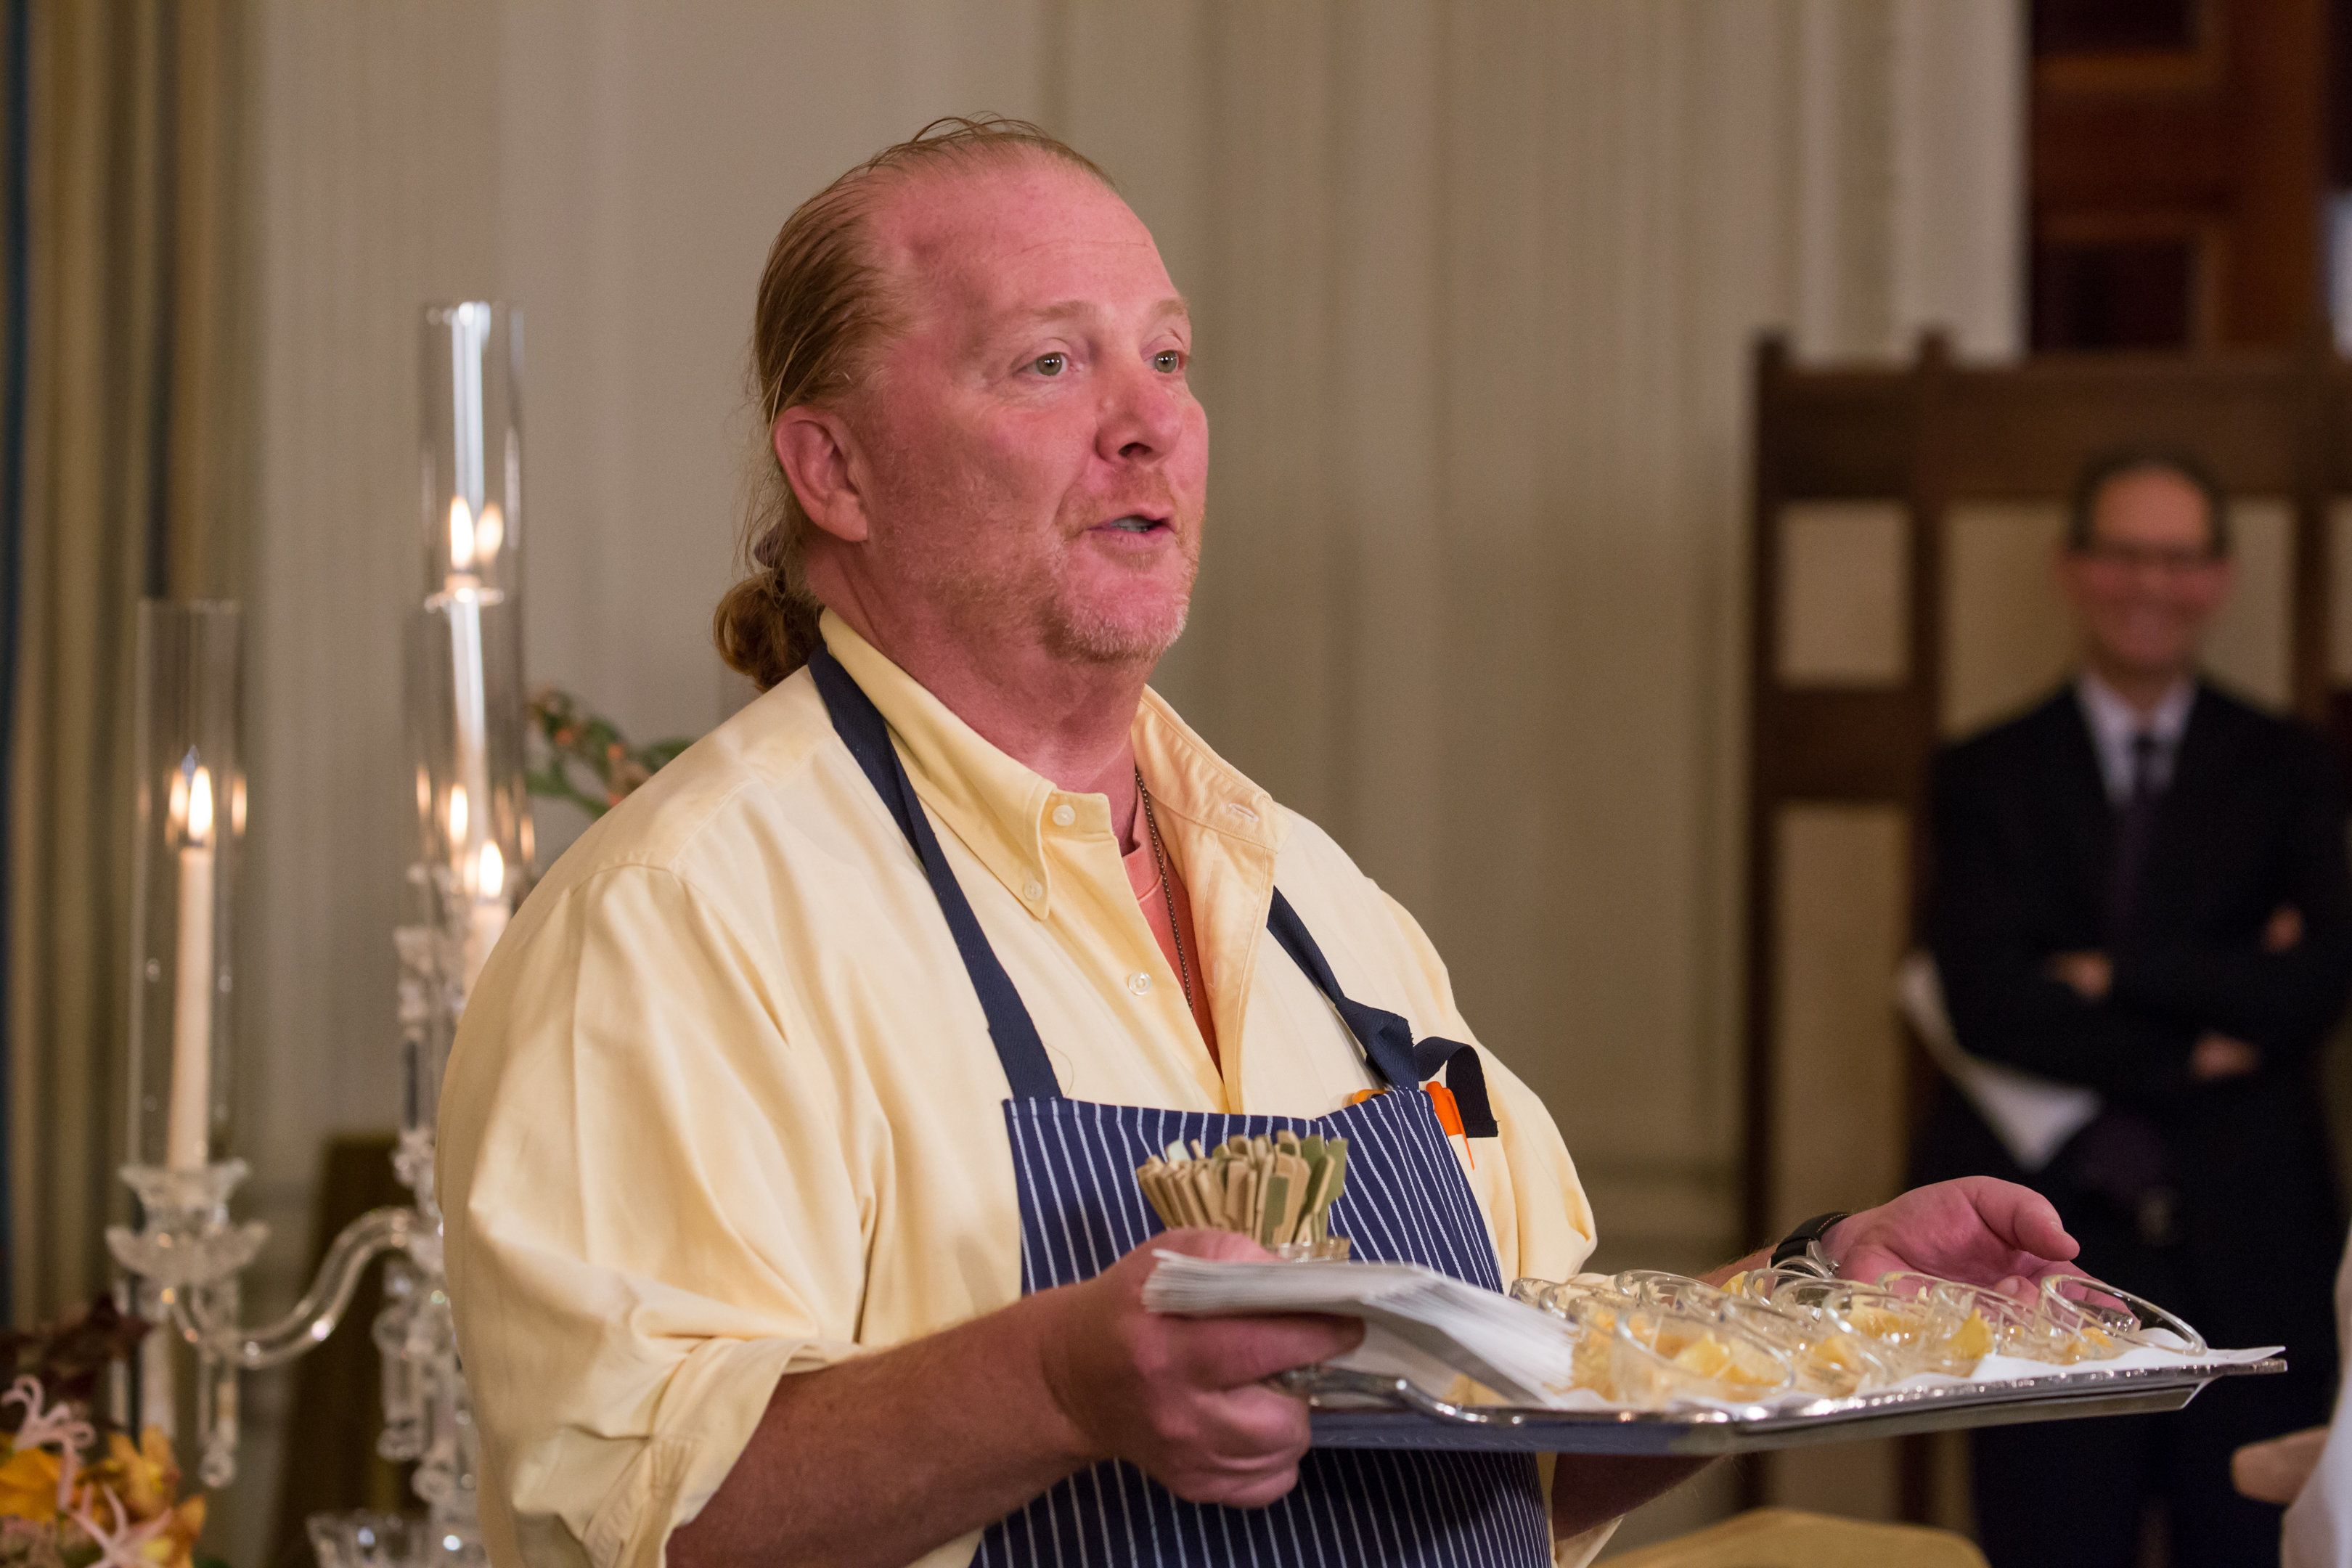 Mario Batali in the White House in